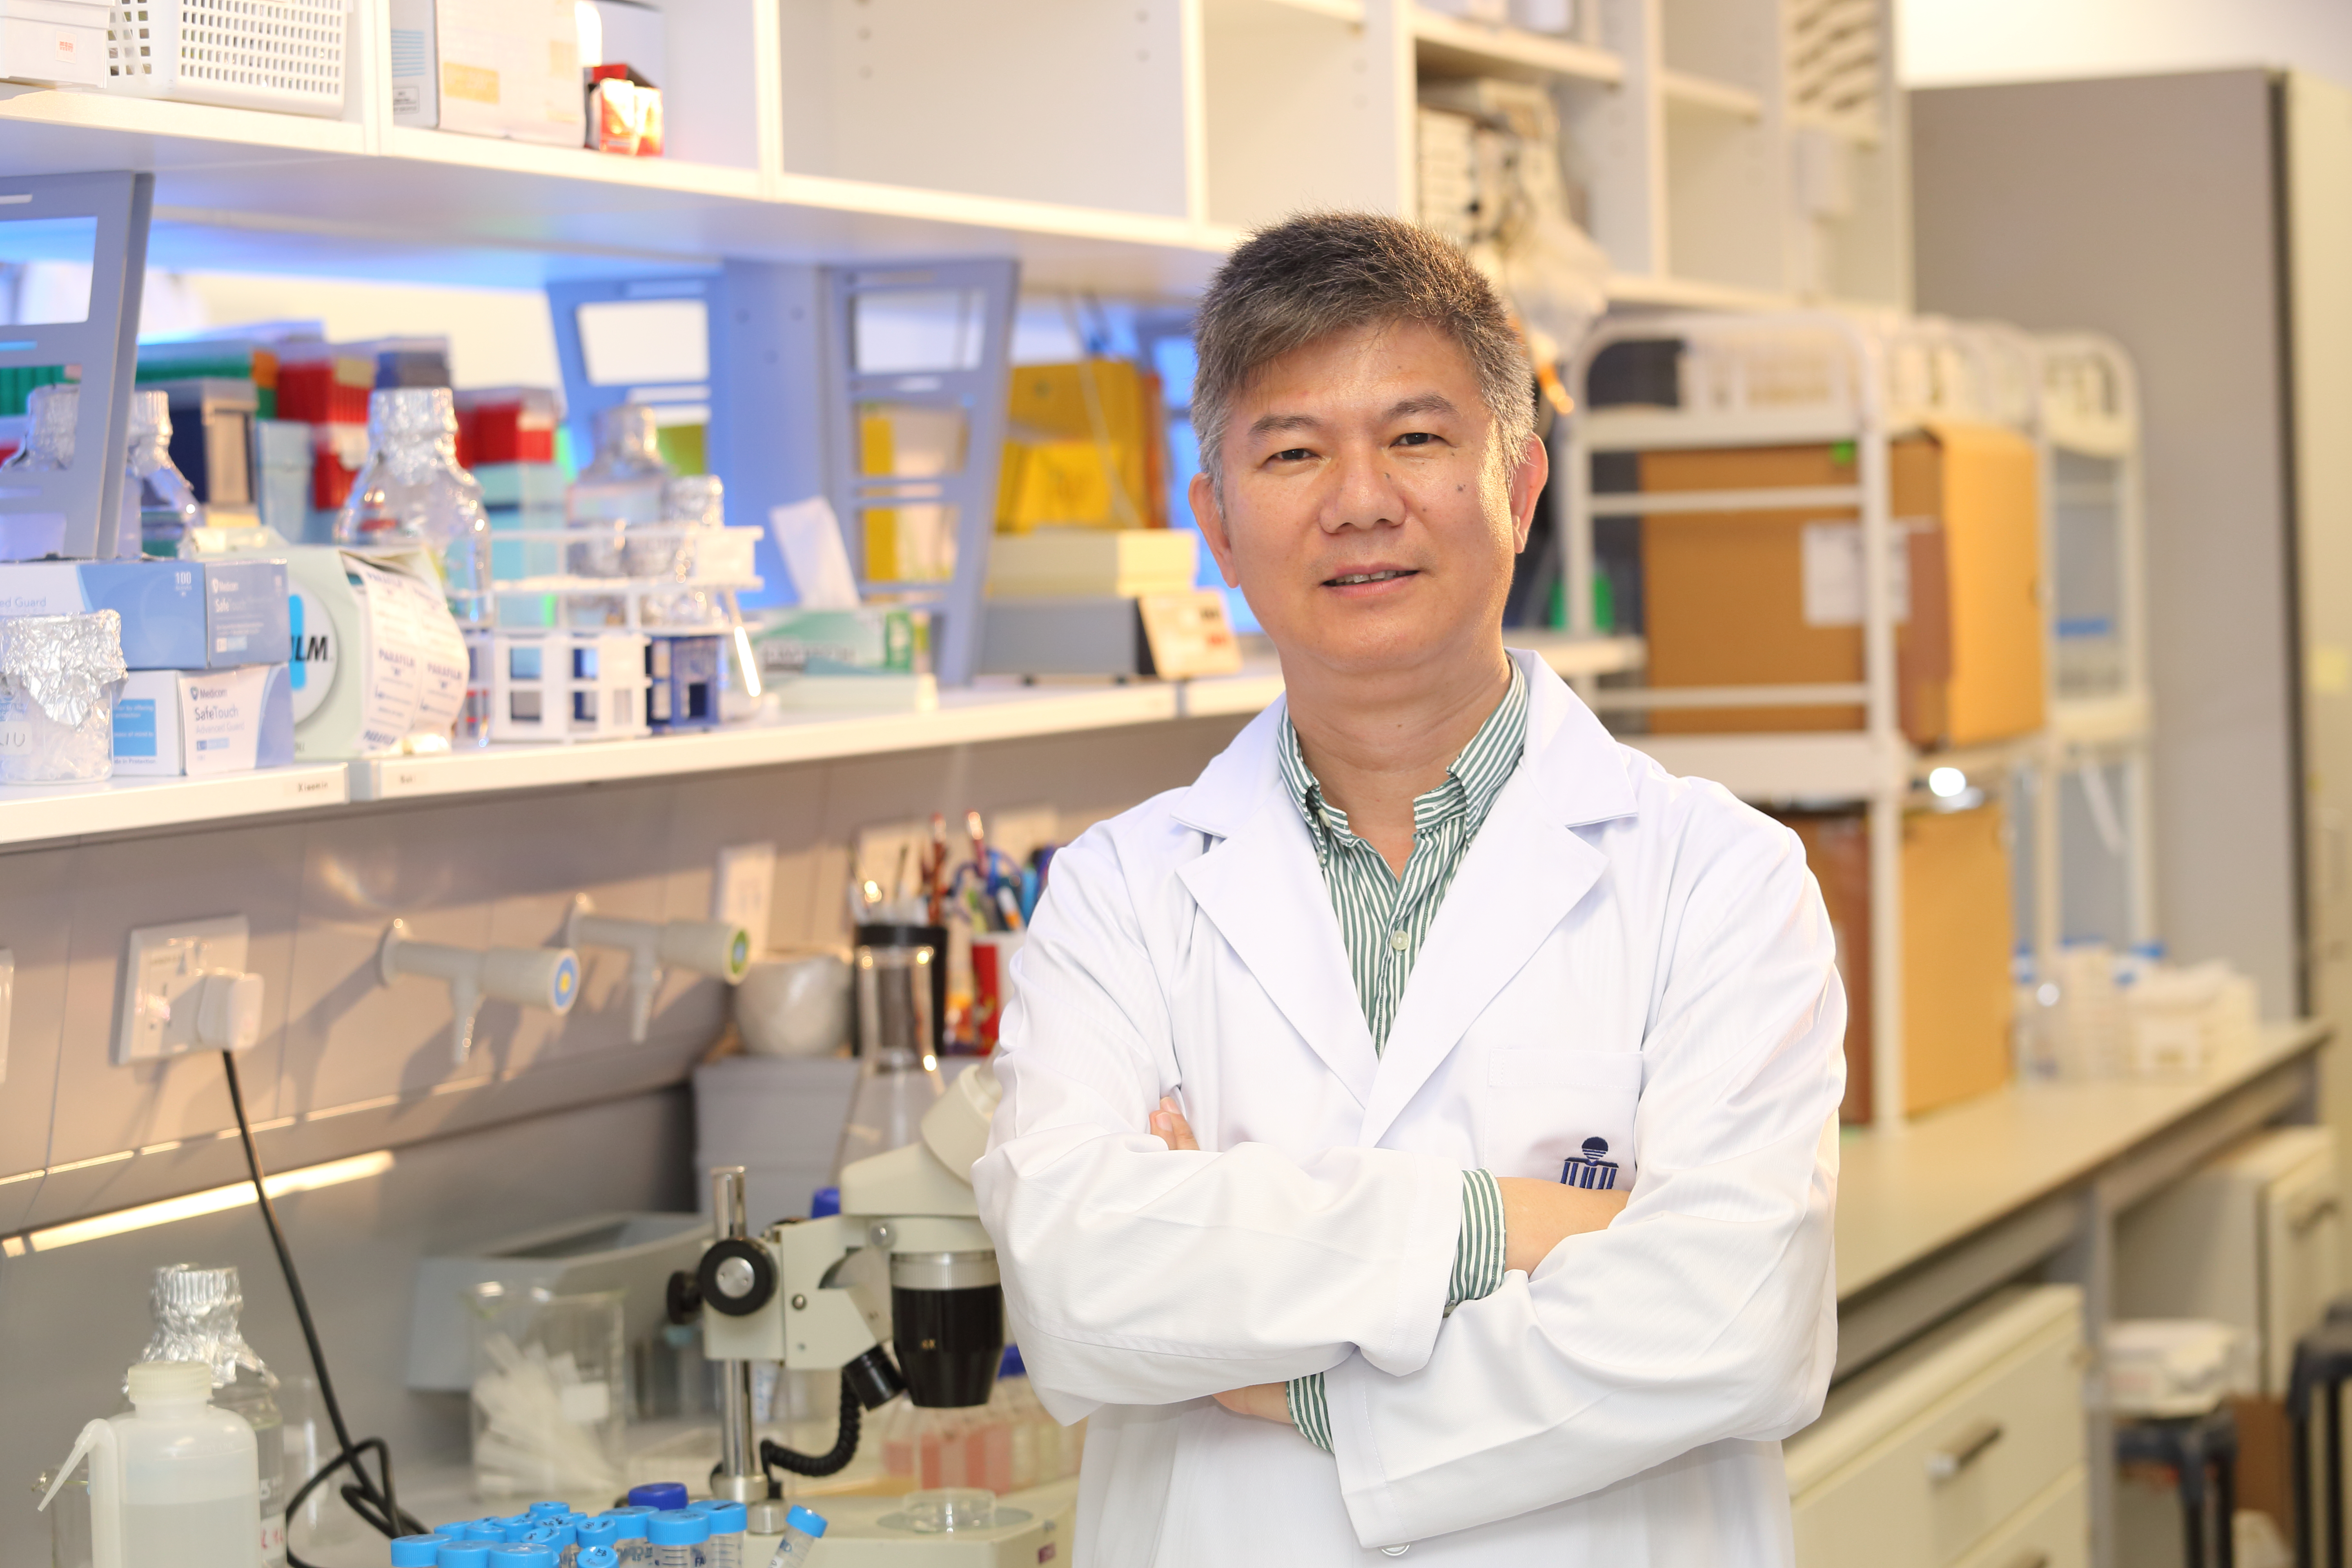 A research led by Prof. LIU Hongbin, Associate Head and Chair Professor of HKUST's Department of Ocean Science, has shown growing dominance of diatom algae in the Pearl River Estuary